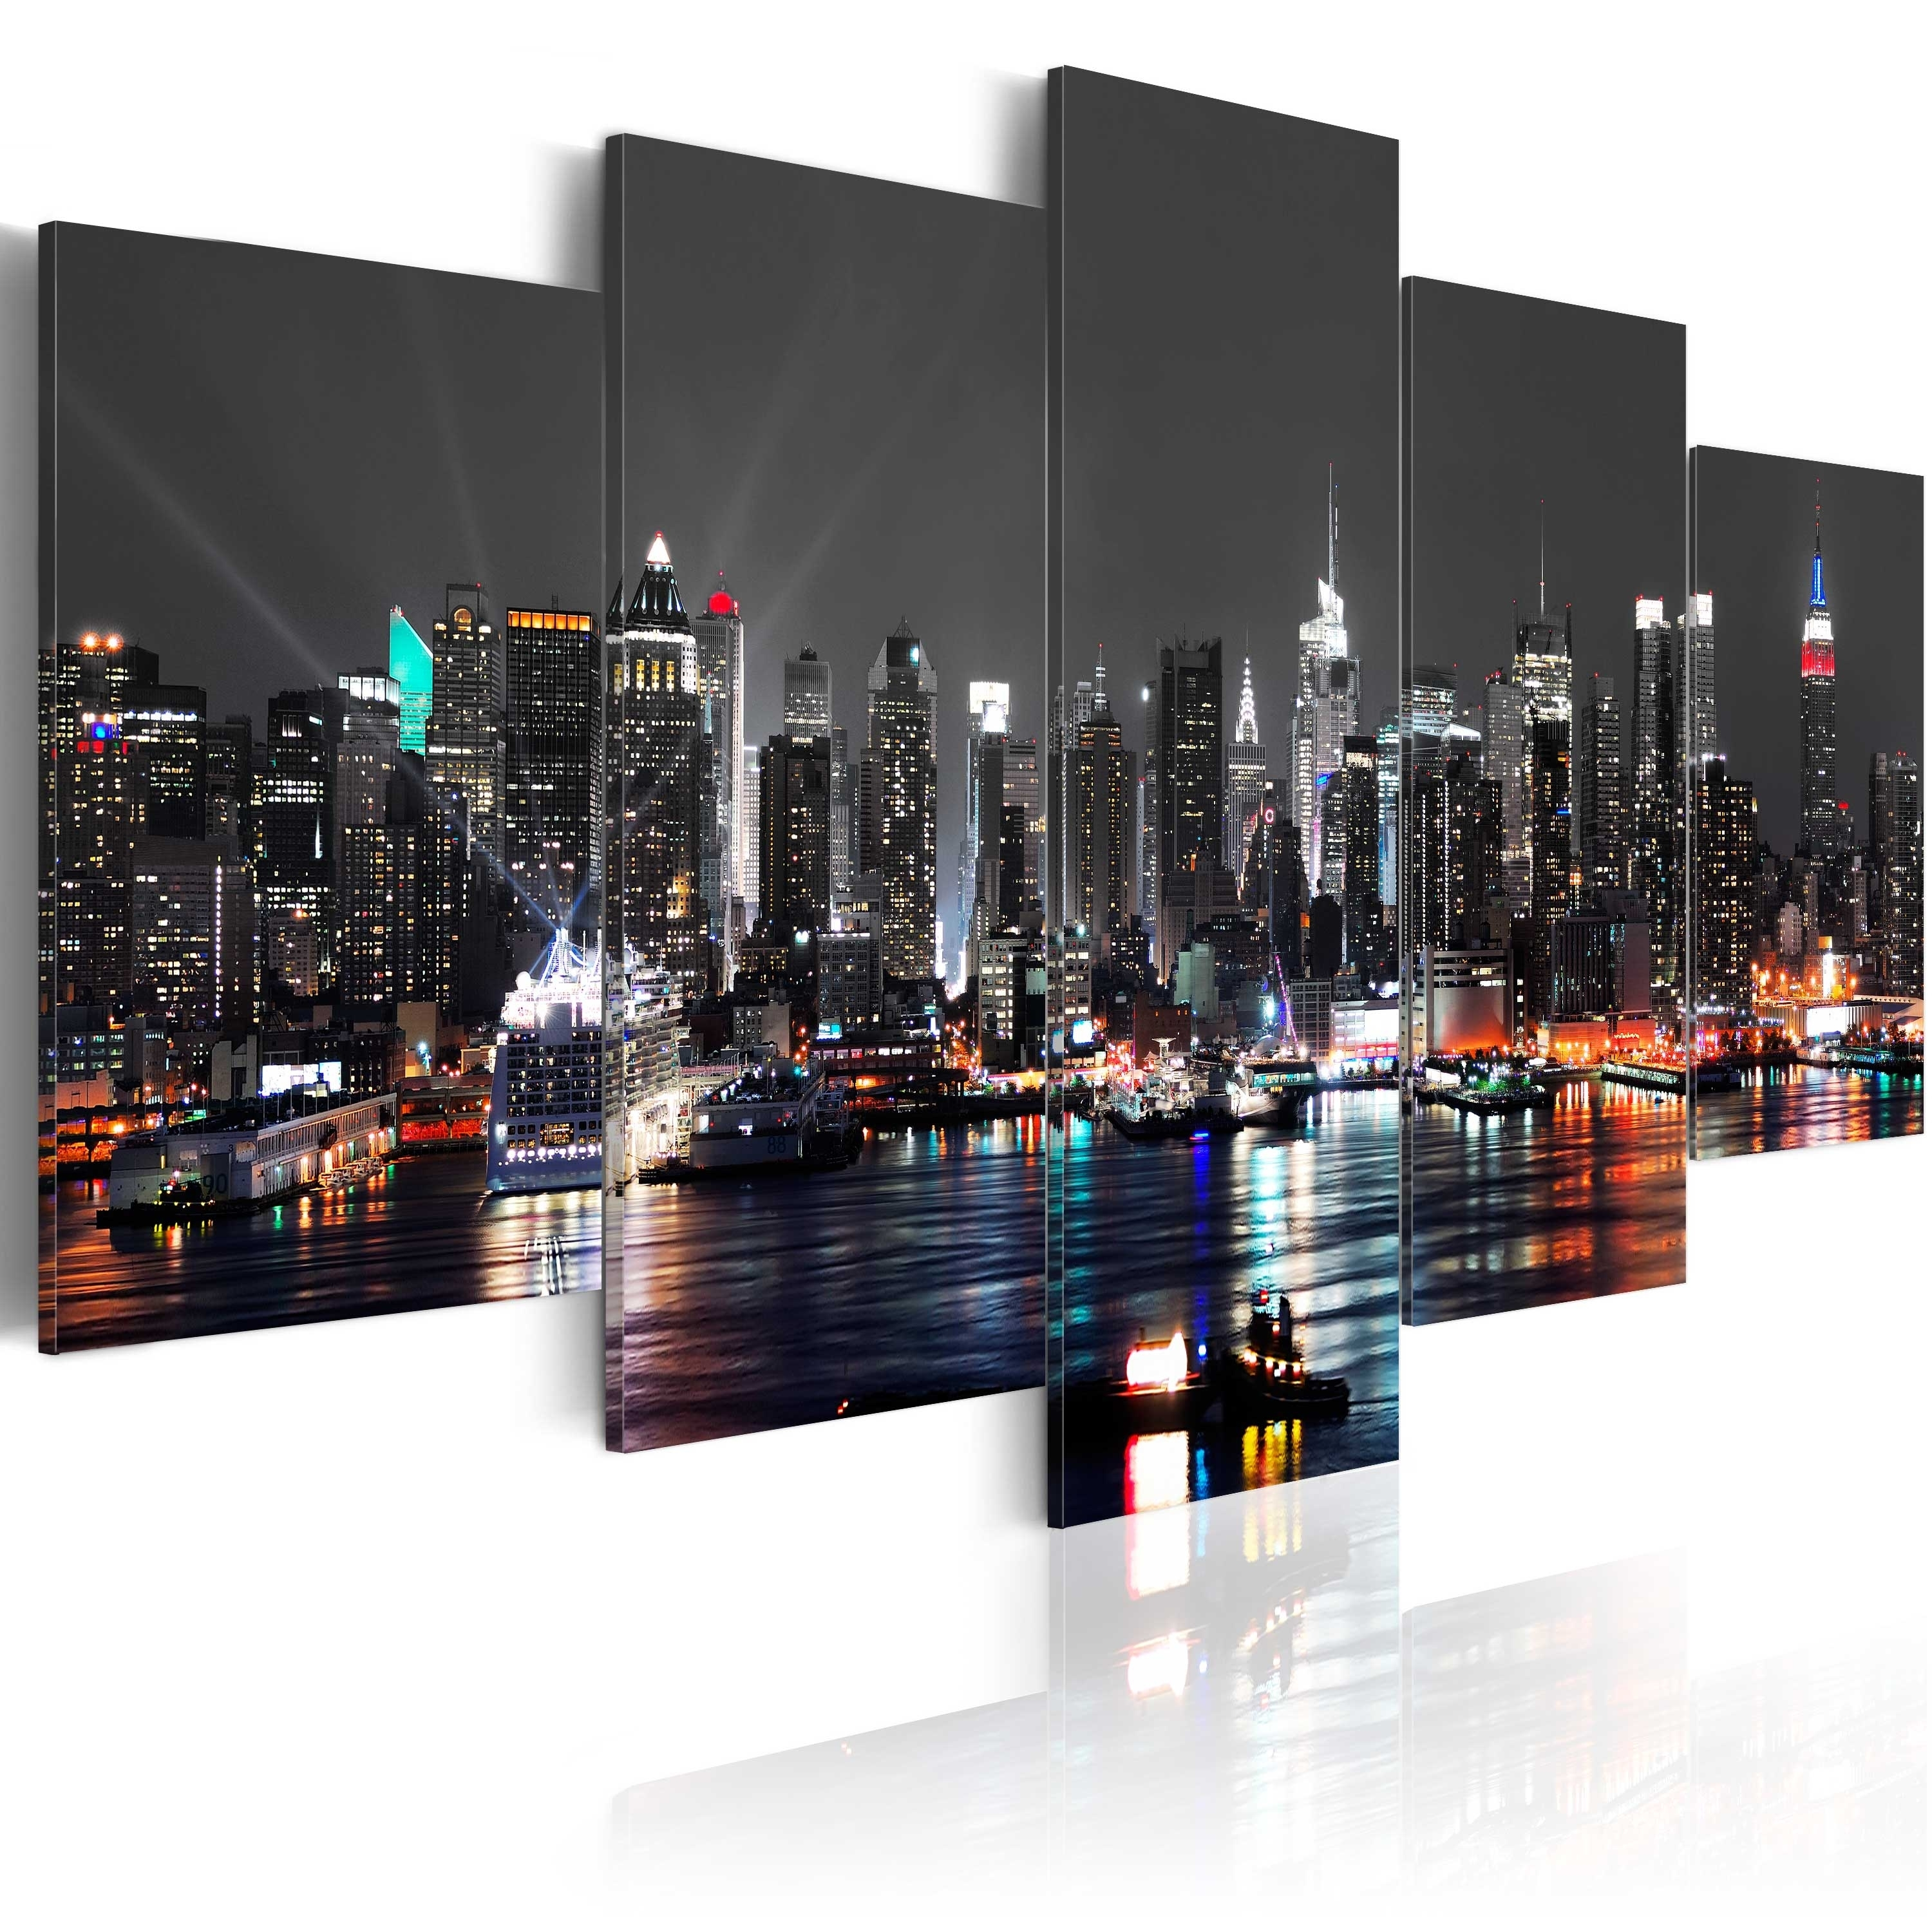 Best Of Canvas Wall Art New York | Wall Decorations For 2017 New York Canvas Wall Art (View 3 of 15)